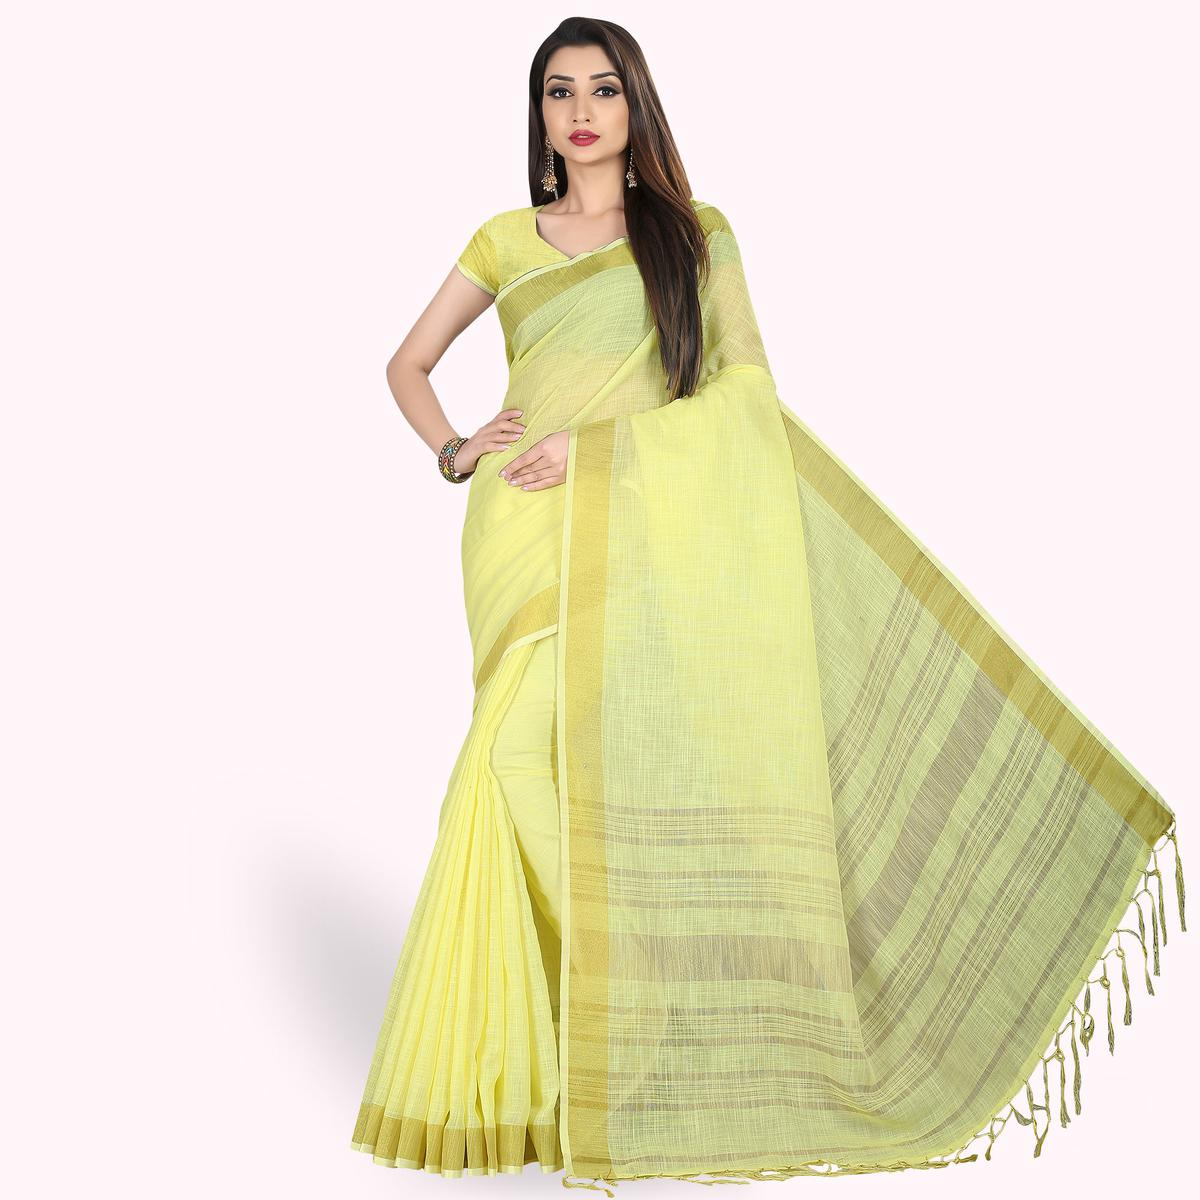 Intricate Lemon Green Colored Festive Wear Cotton Linen Saree